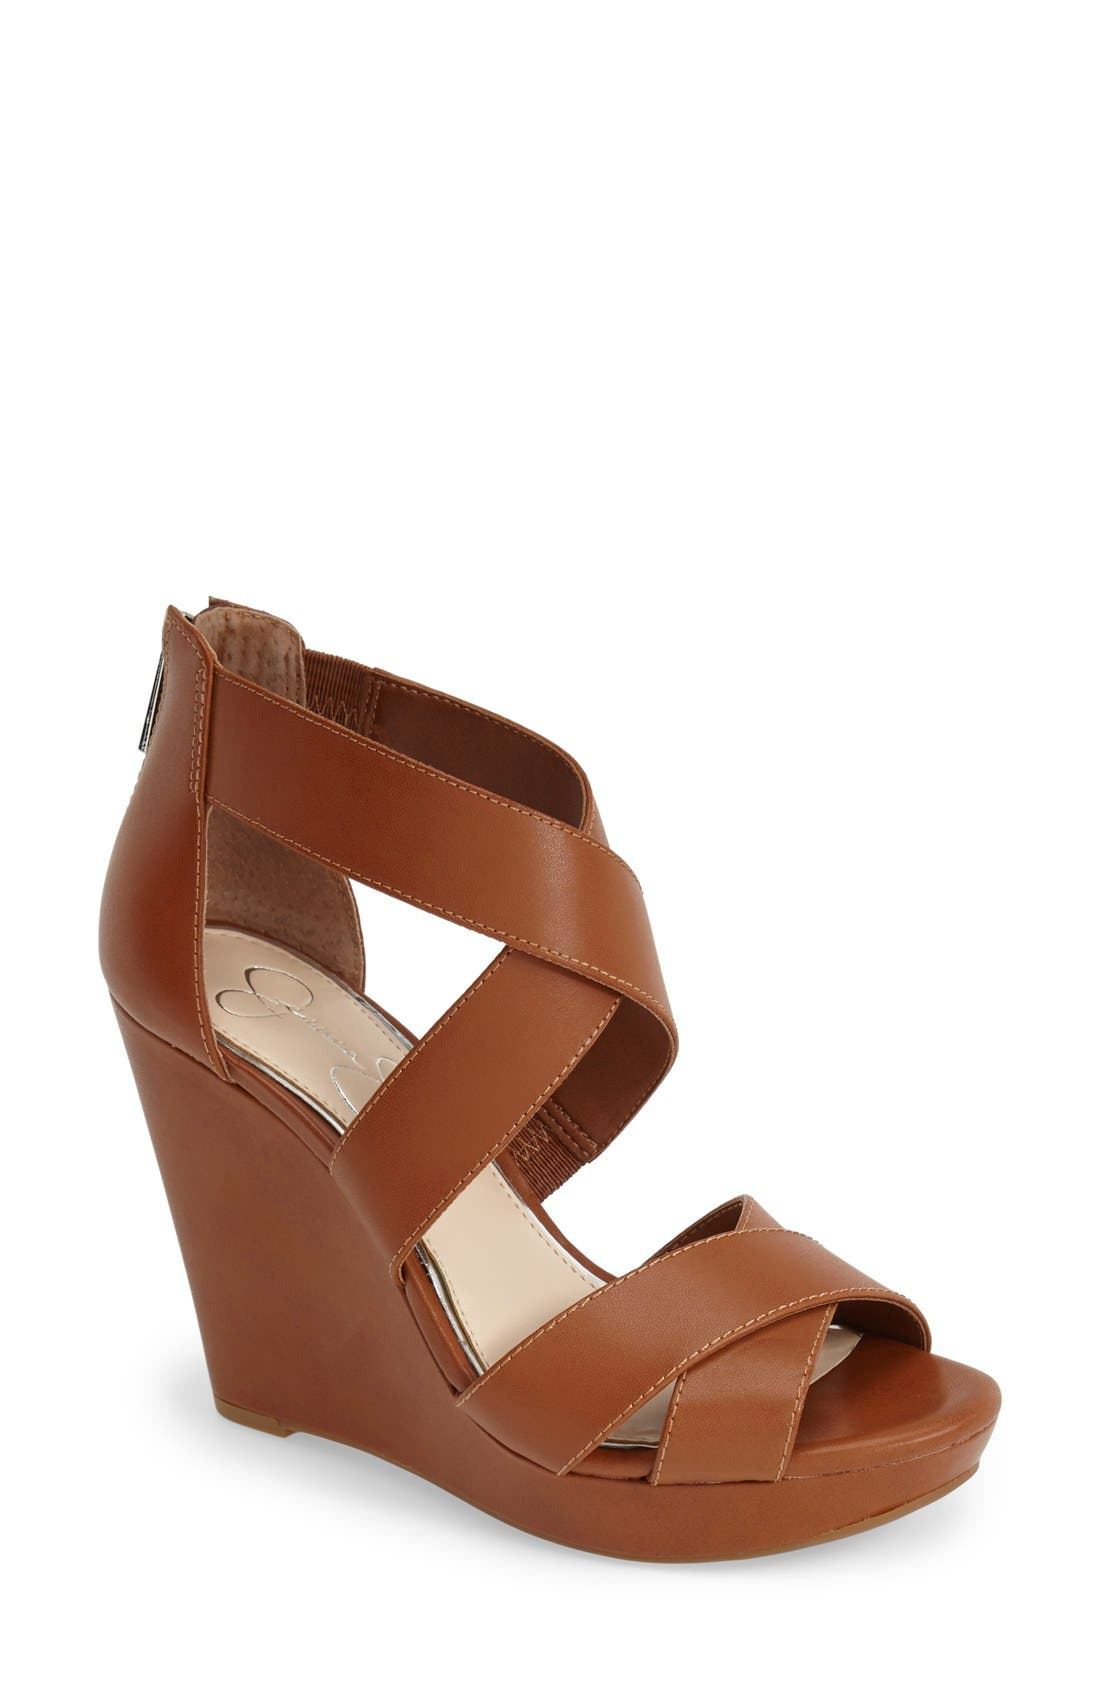 Main Image - Jessica Simpson 'Jadyn' Strappy Wedge Sandal (Women)